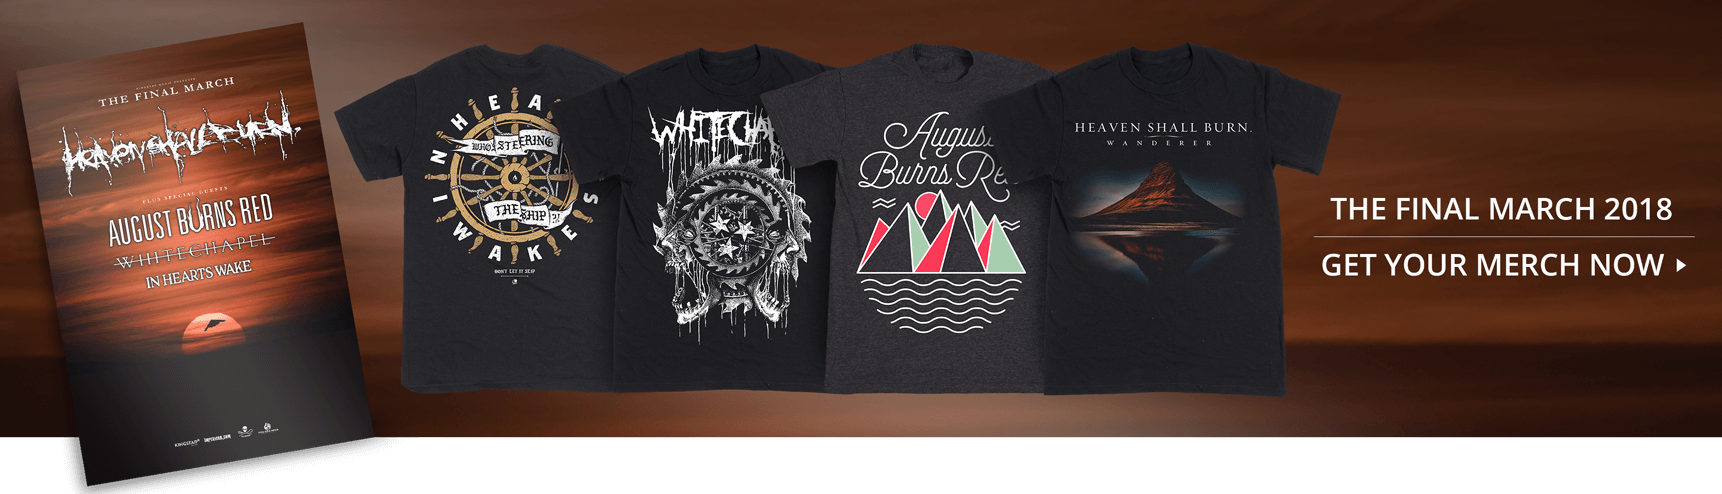 The Final March Tour 2018 - Merch now